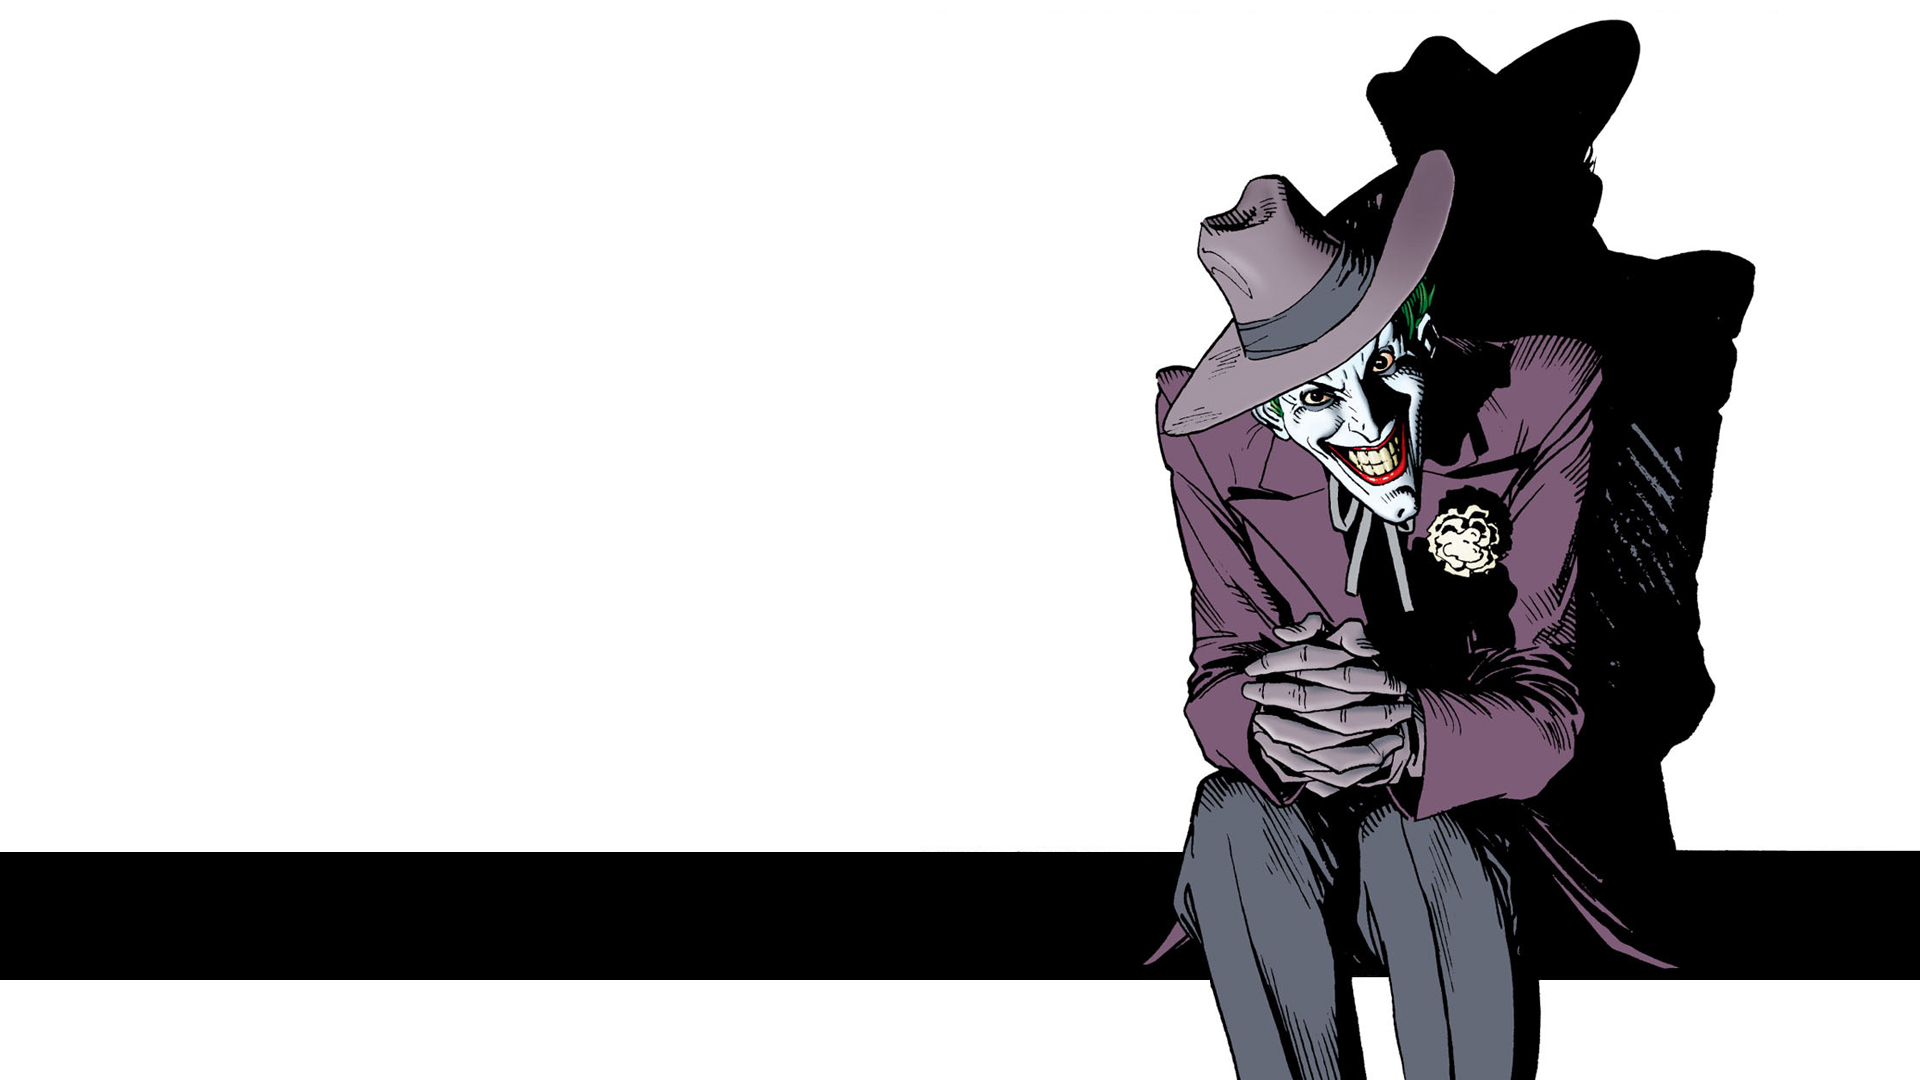 Batman Killing Joke Wallpaper 1920x1080